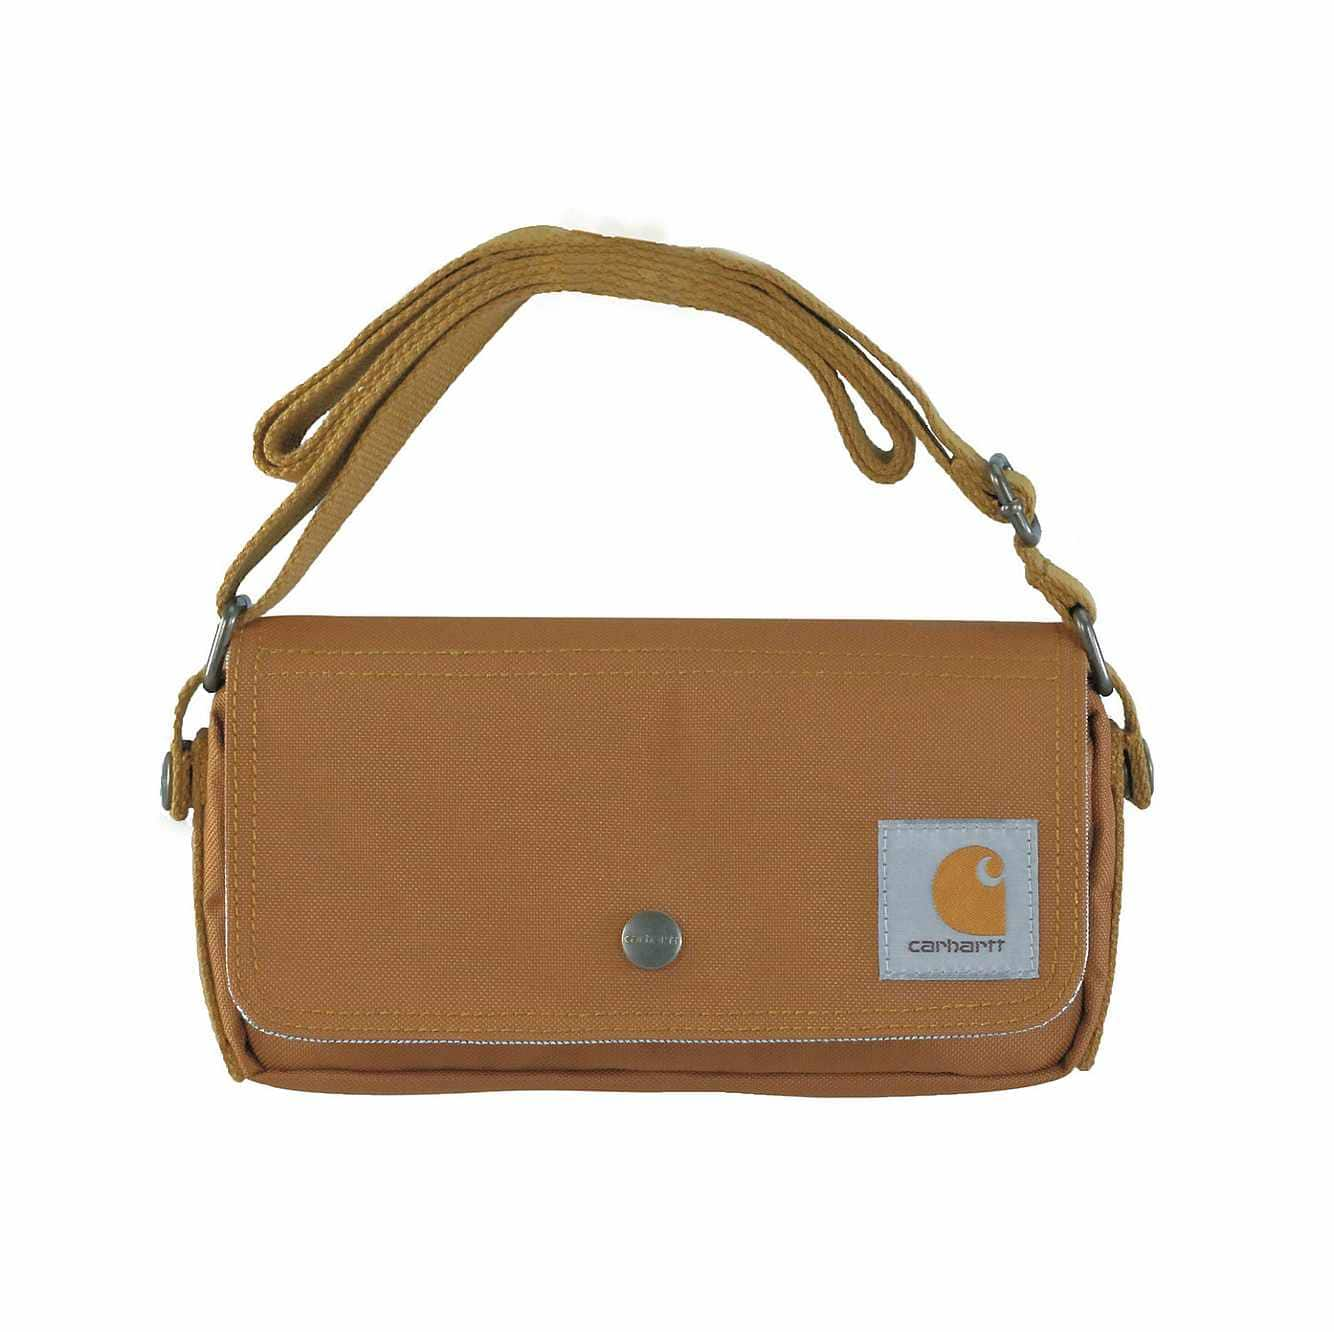 Picture of Essentials Pouch in Carhartt Brown